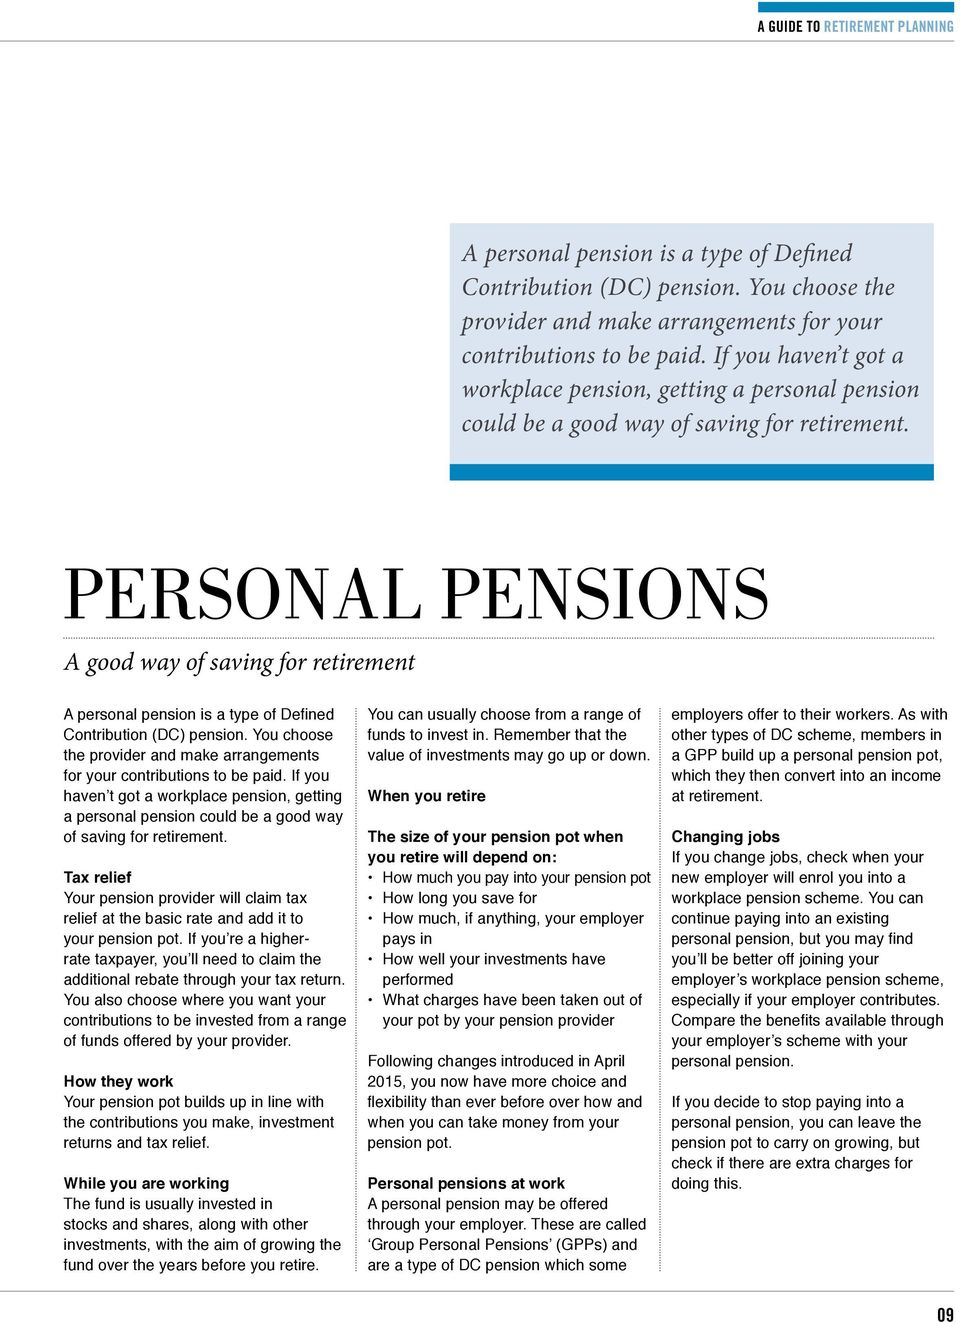 Personal pensions A good way of saving for retirement   Tax relief Your pension provider will claim tax relief at the basic rate and add it to your pension pot.